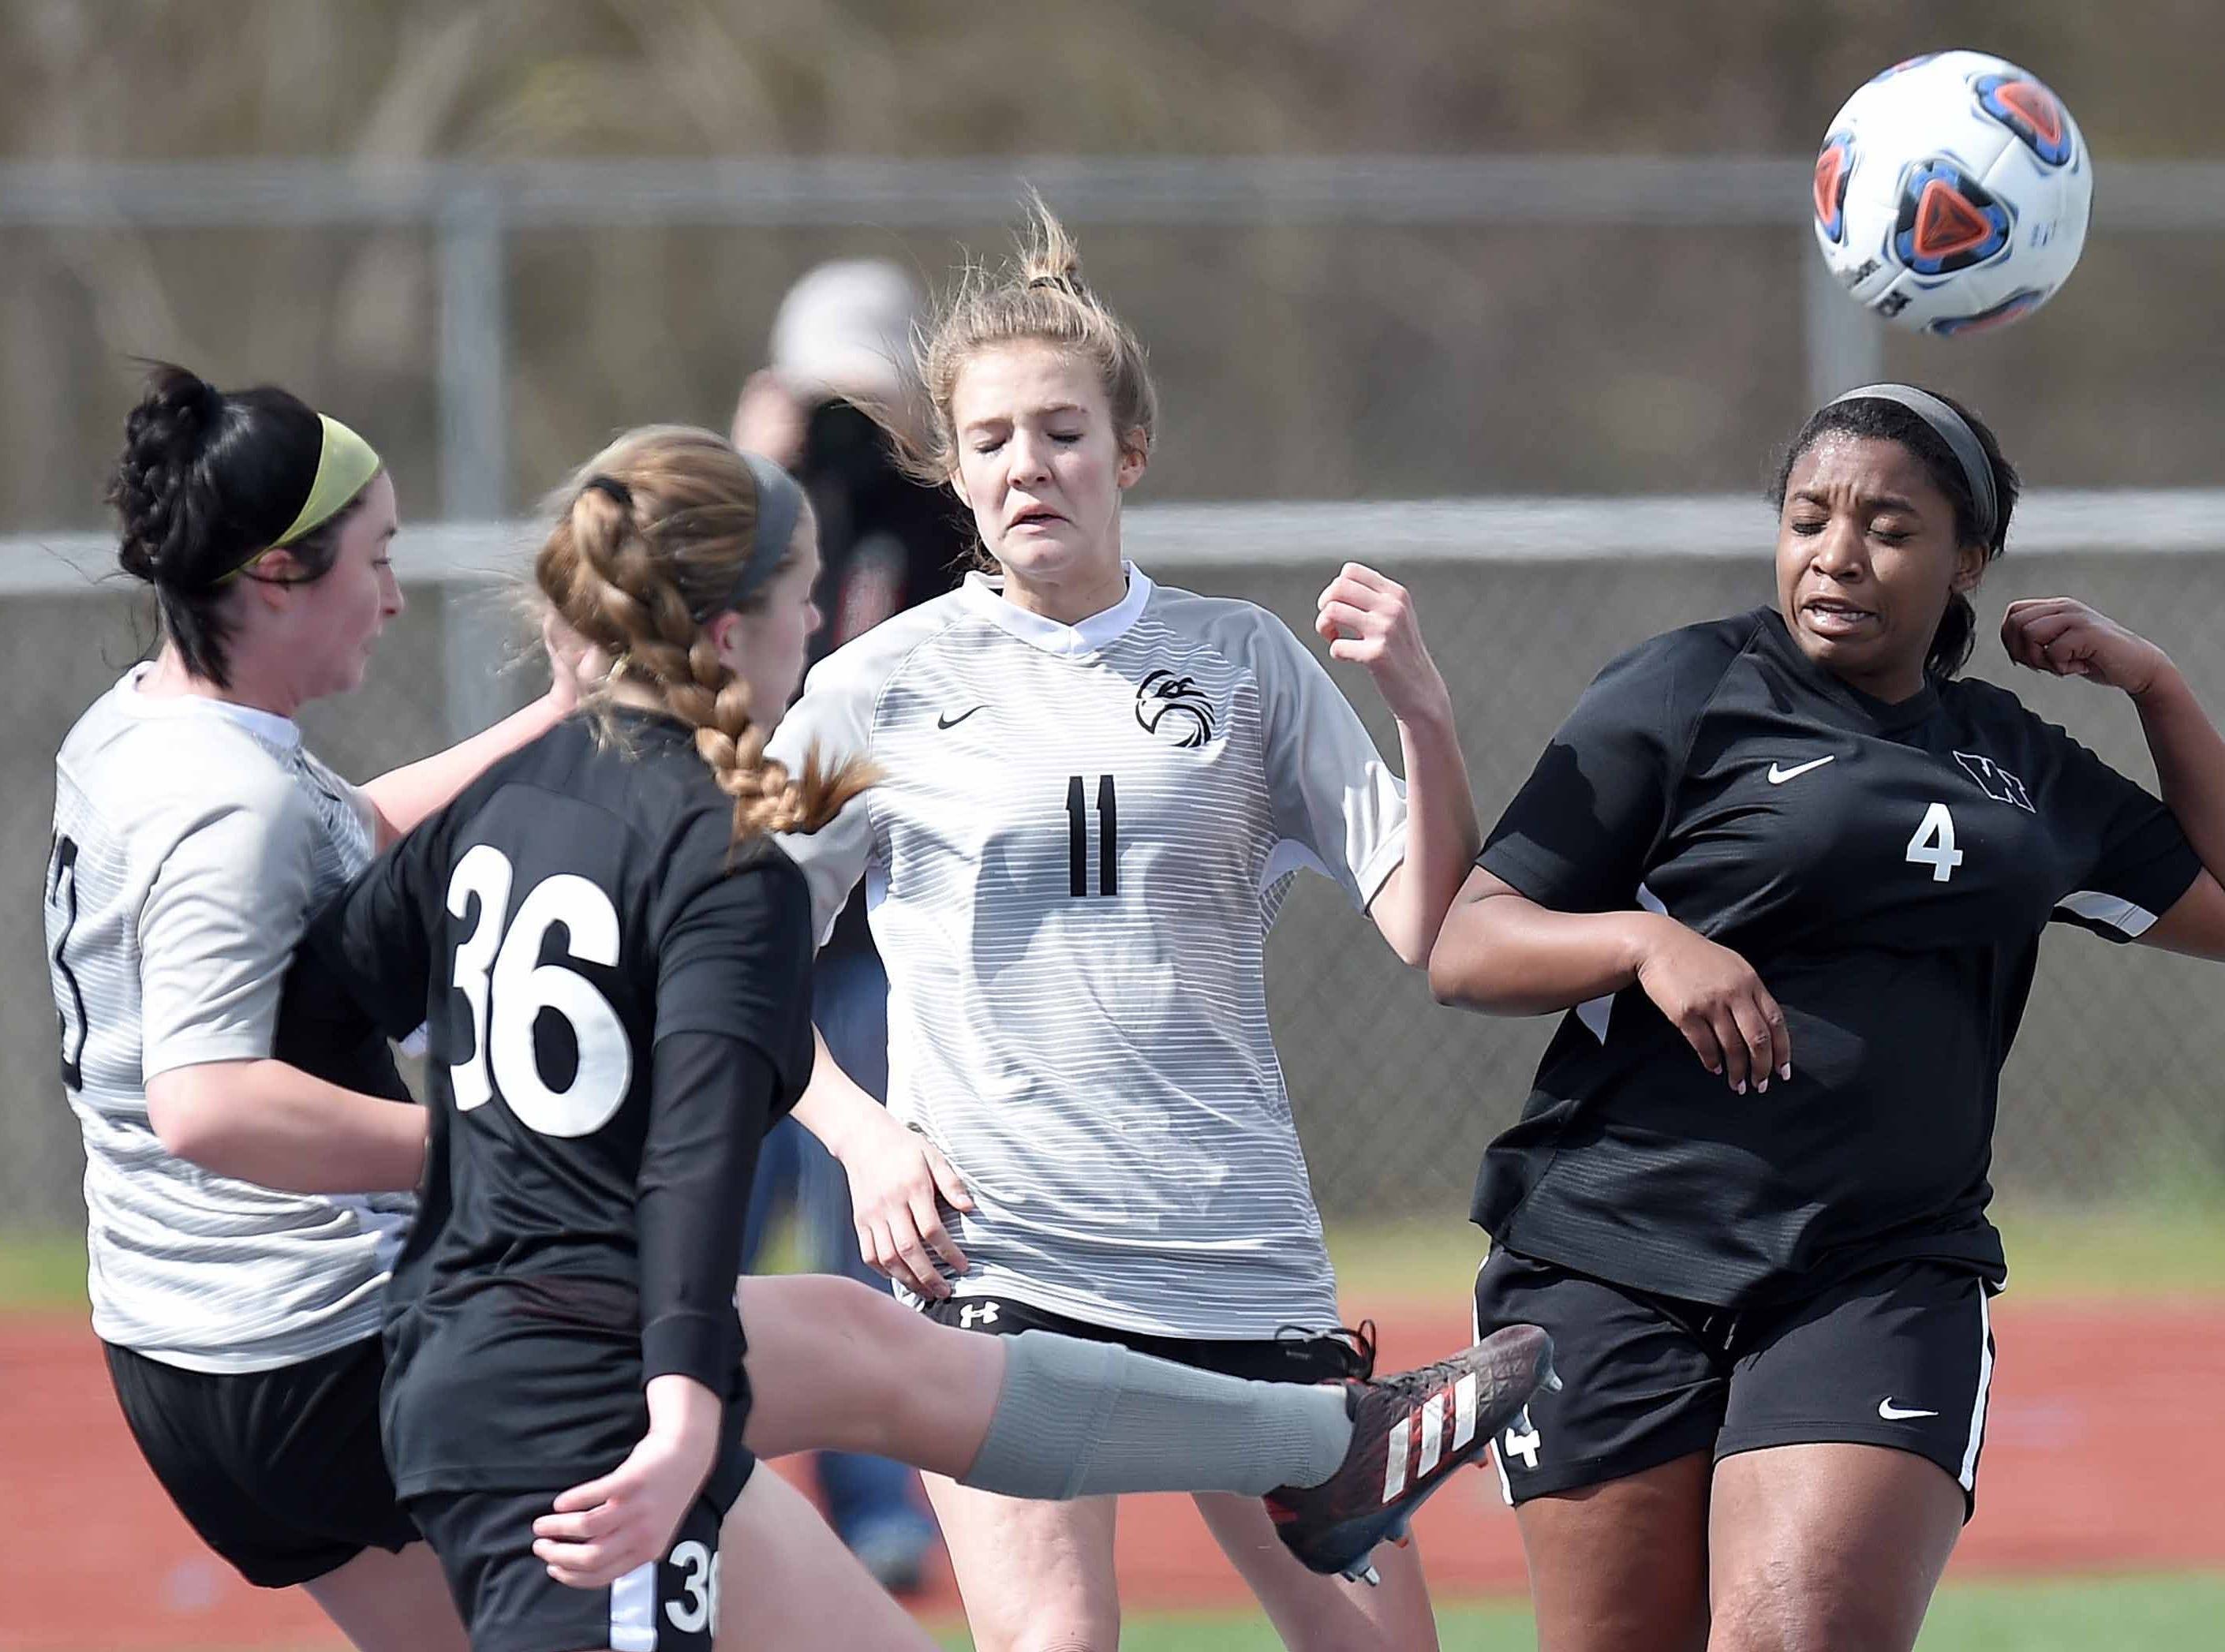 Florence's Grace Giglio (13) clears the ball against West Lauderdale in the Class 4A state championship in the MHSAA BlueCross Blue Shield of Mississippi Soccer Classic on Saturday, February 9, 2019, at Ridgeland High School in Ridgeland, Miss.